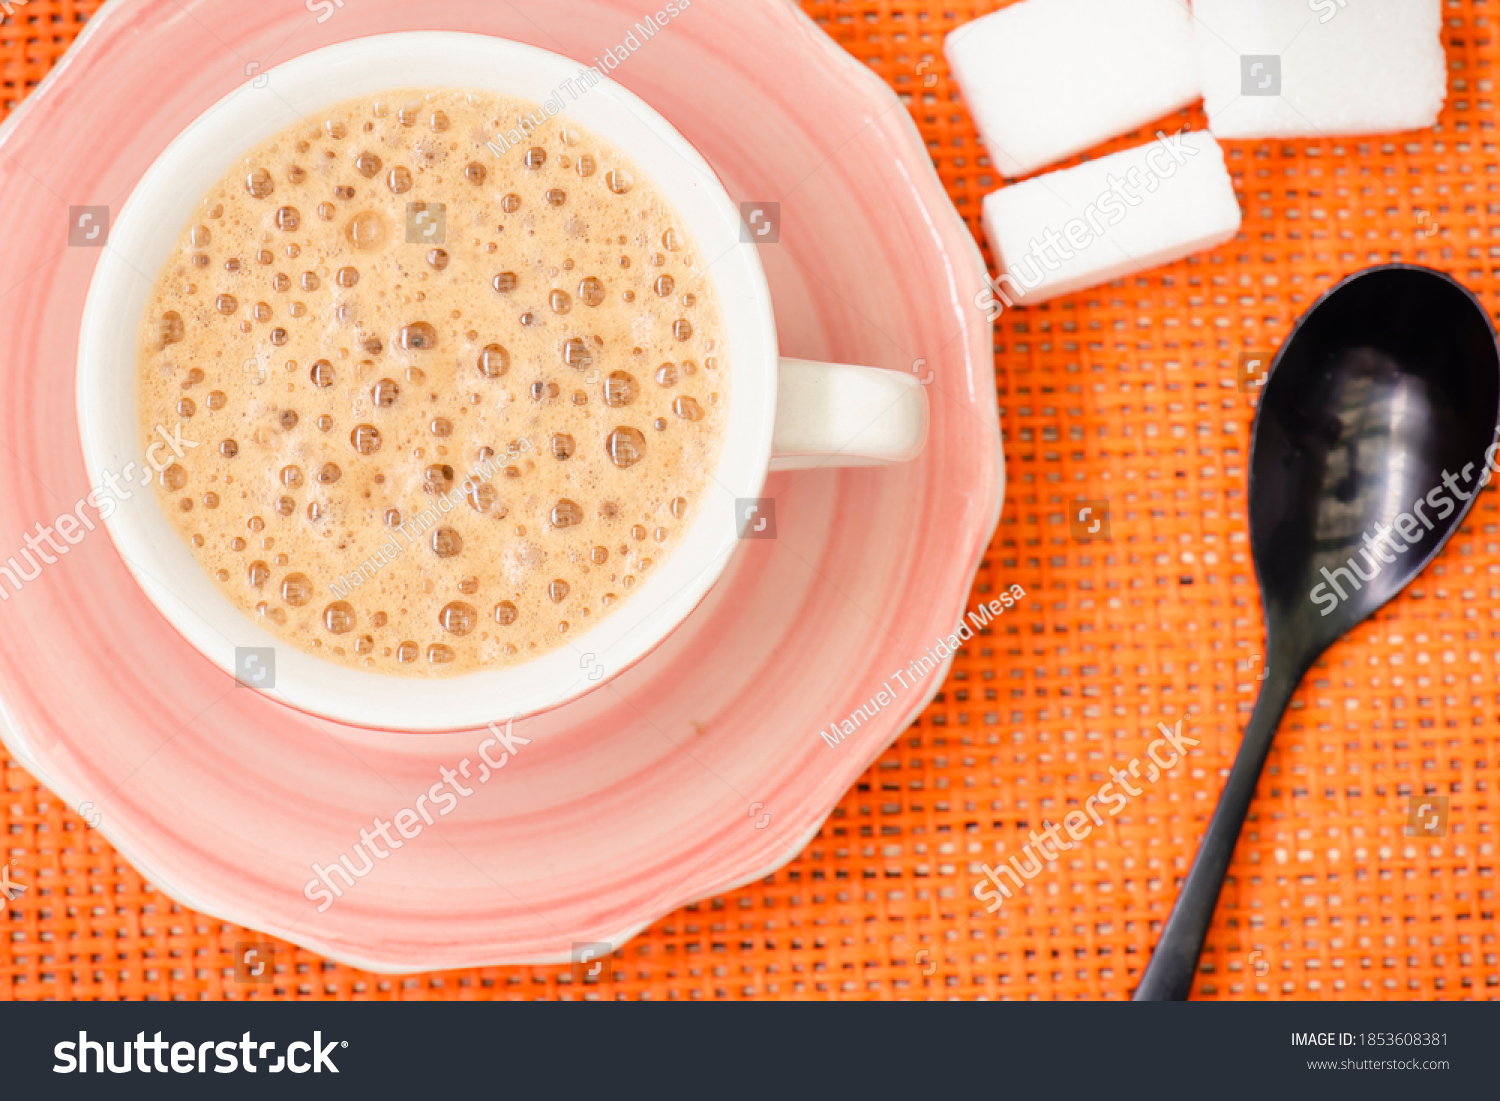 stock-photo-cup-of-latte-coffee-on-a-pin